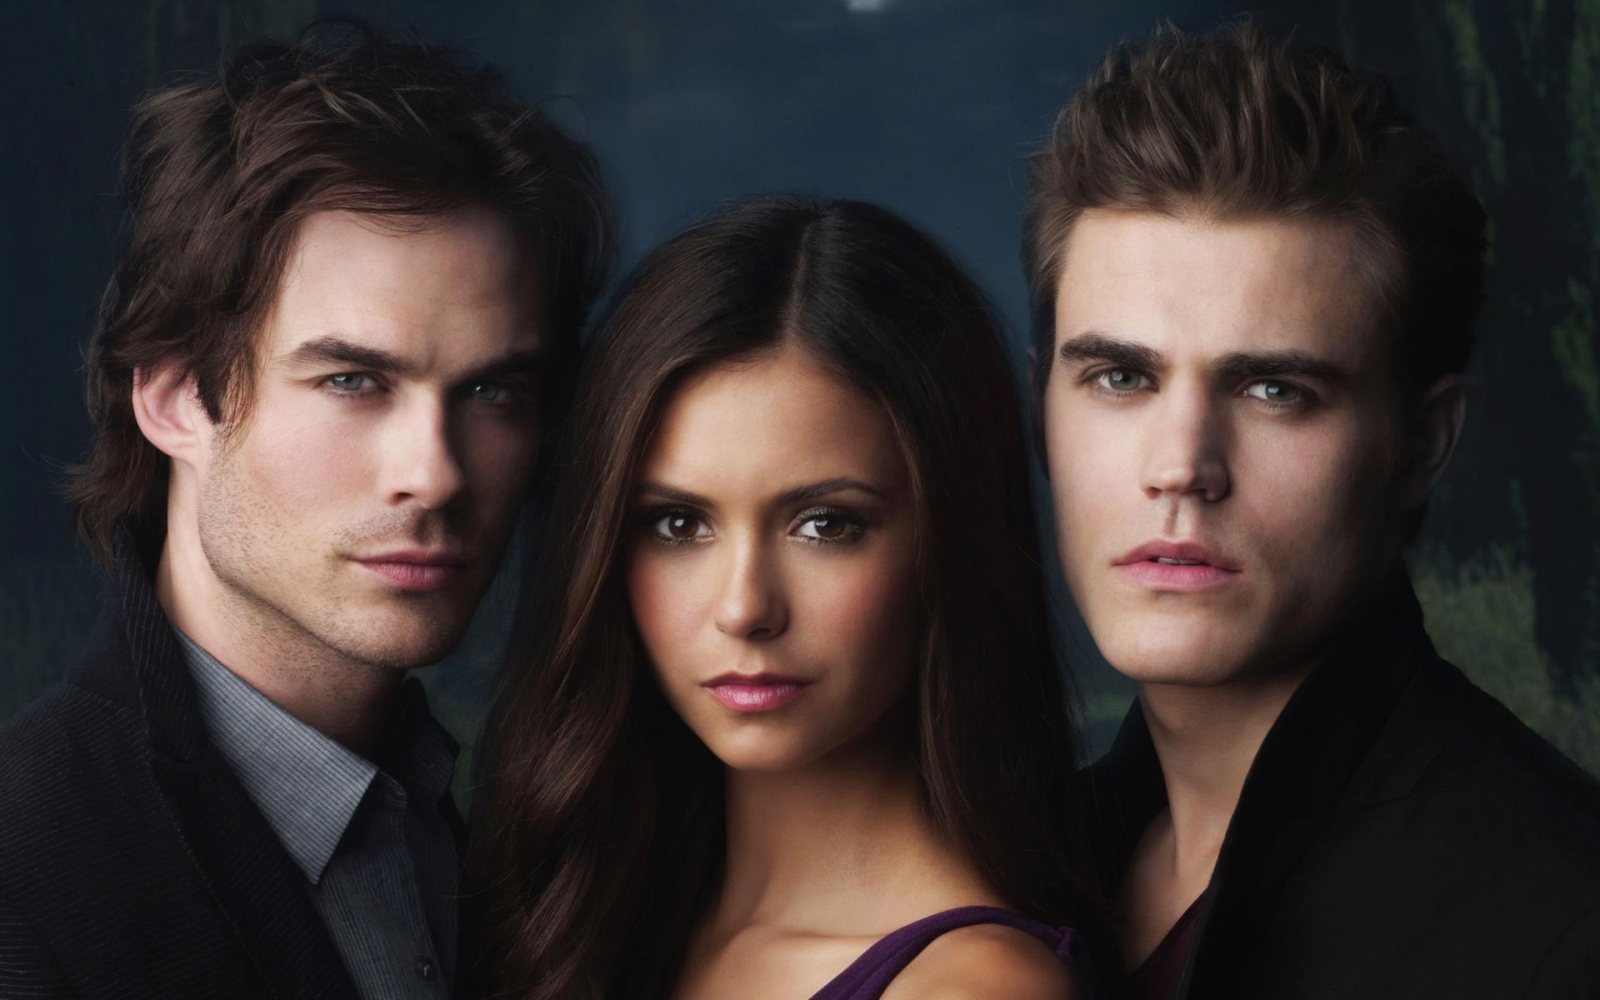 Vampire Diaries Elena and Stefan reunion photo sends fans into overdrive; check it out here